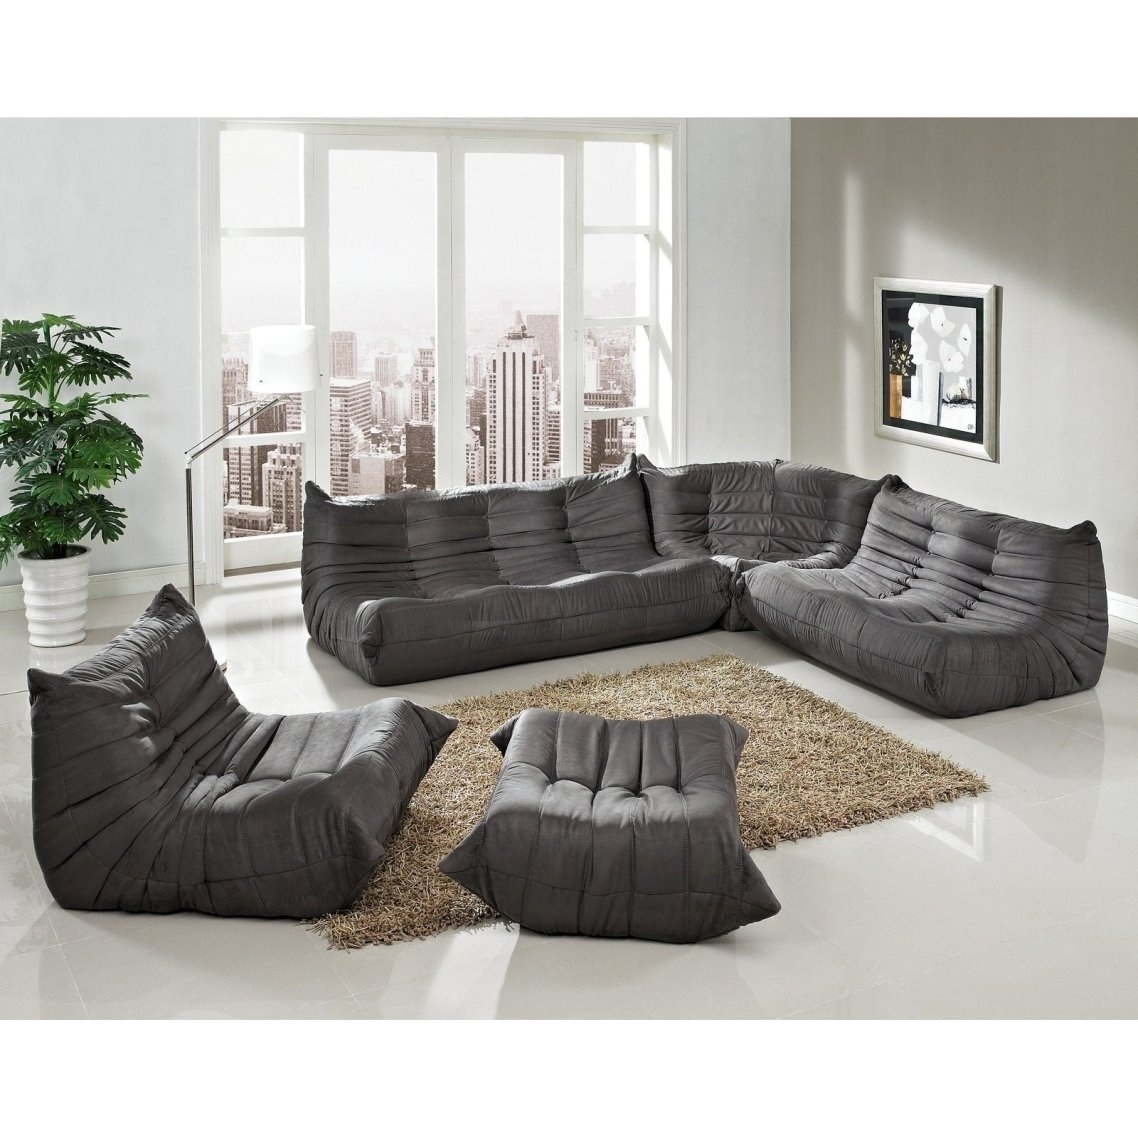 Low Height Sofas – Fjellkjeden With Regard To Low Sofas (Image 5 of 10)